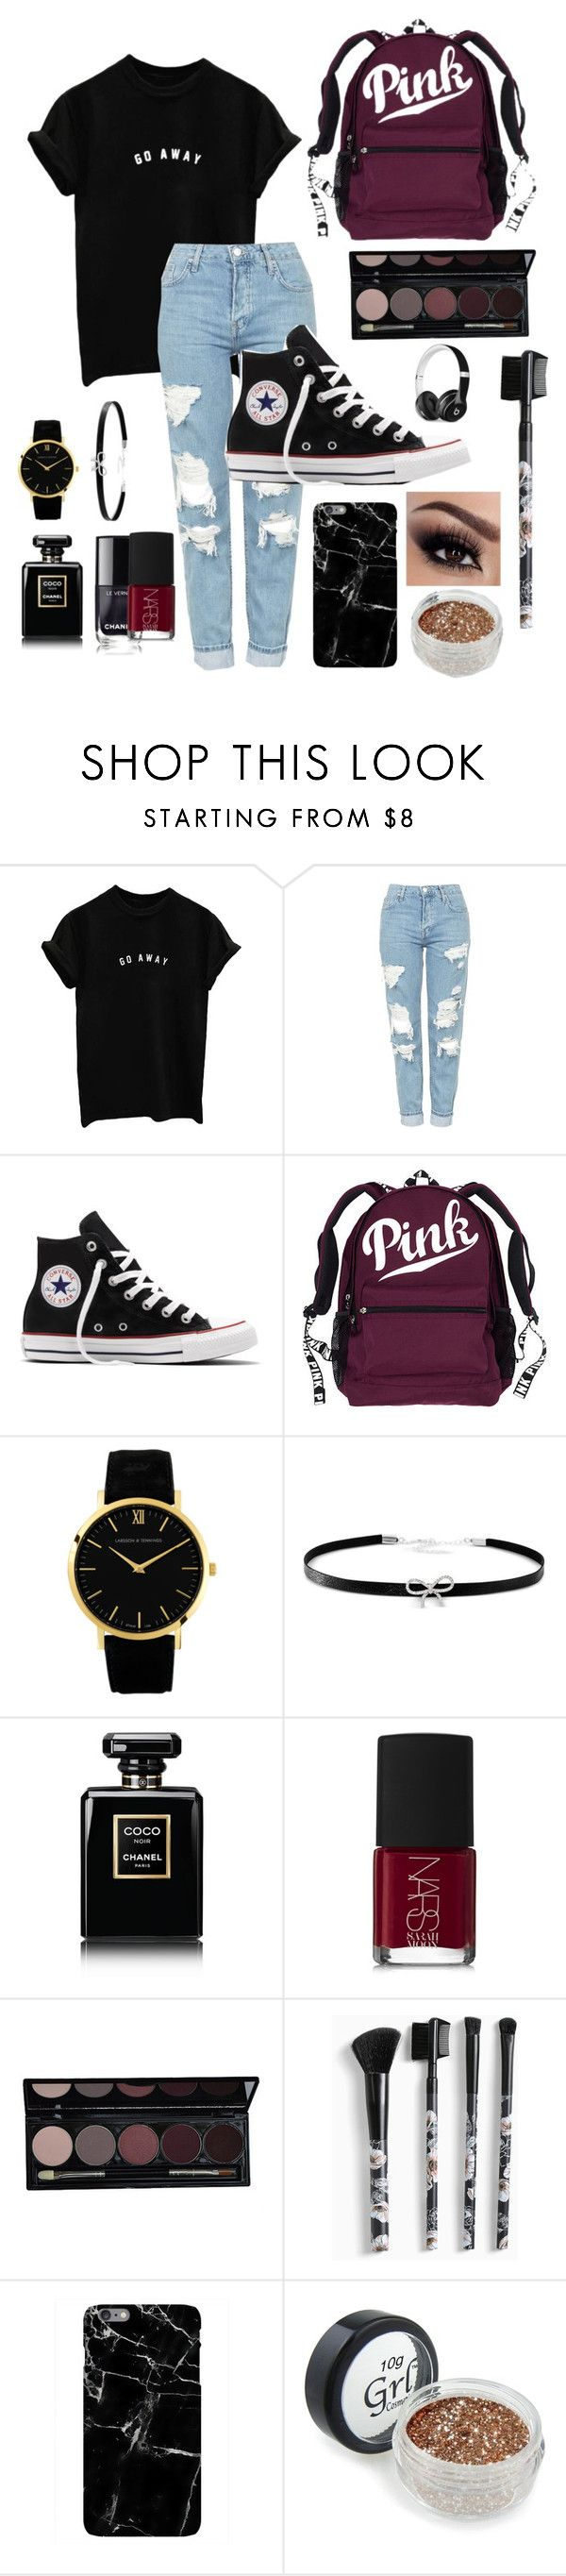 """"""""""" by libbyking ❤ liked on Polyvore featuring Topshop, Converse, Giani Bernini, Chanel, NARS Cosmetics, Torrid and Beats by Dr. Dre"""